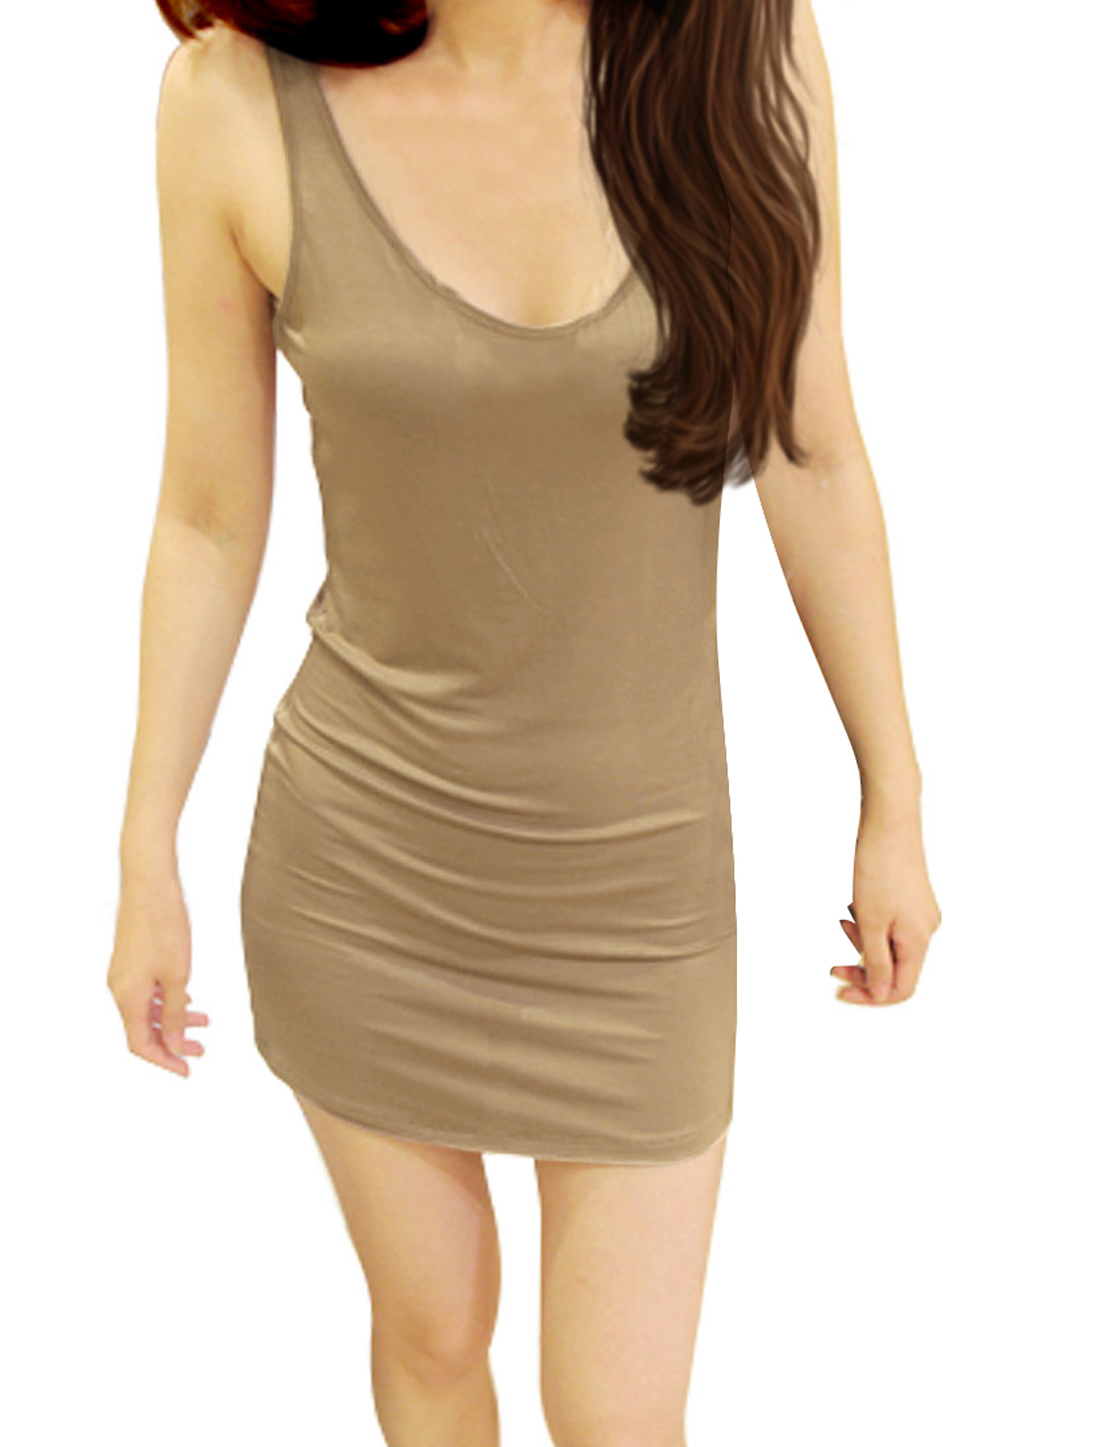 U Neck Backless Pure Beige Closefitting Mini Dress XS for Ladies